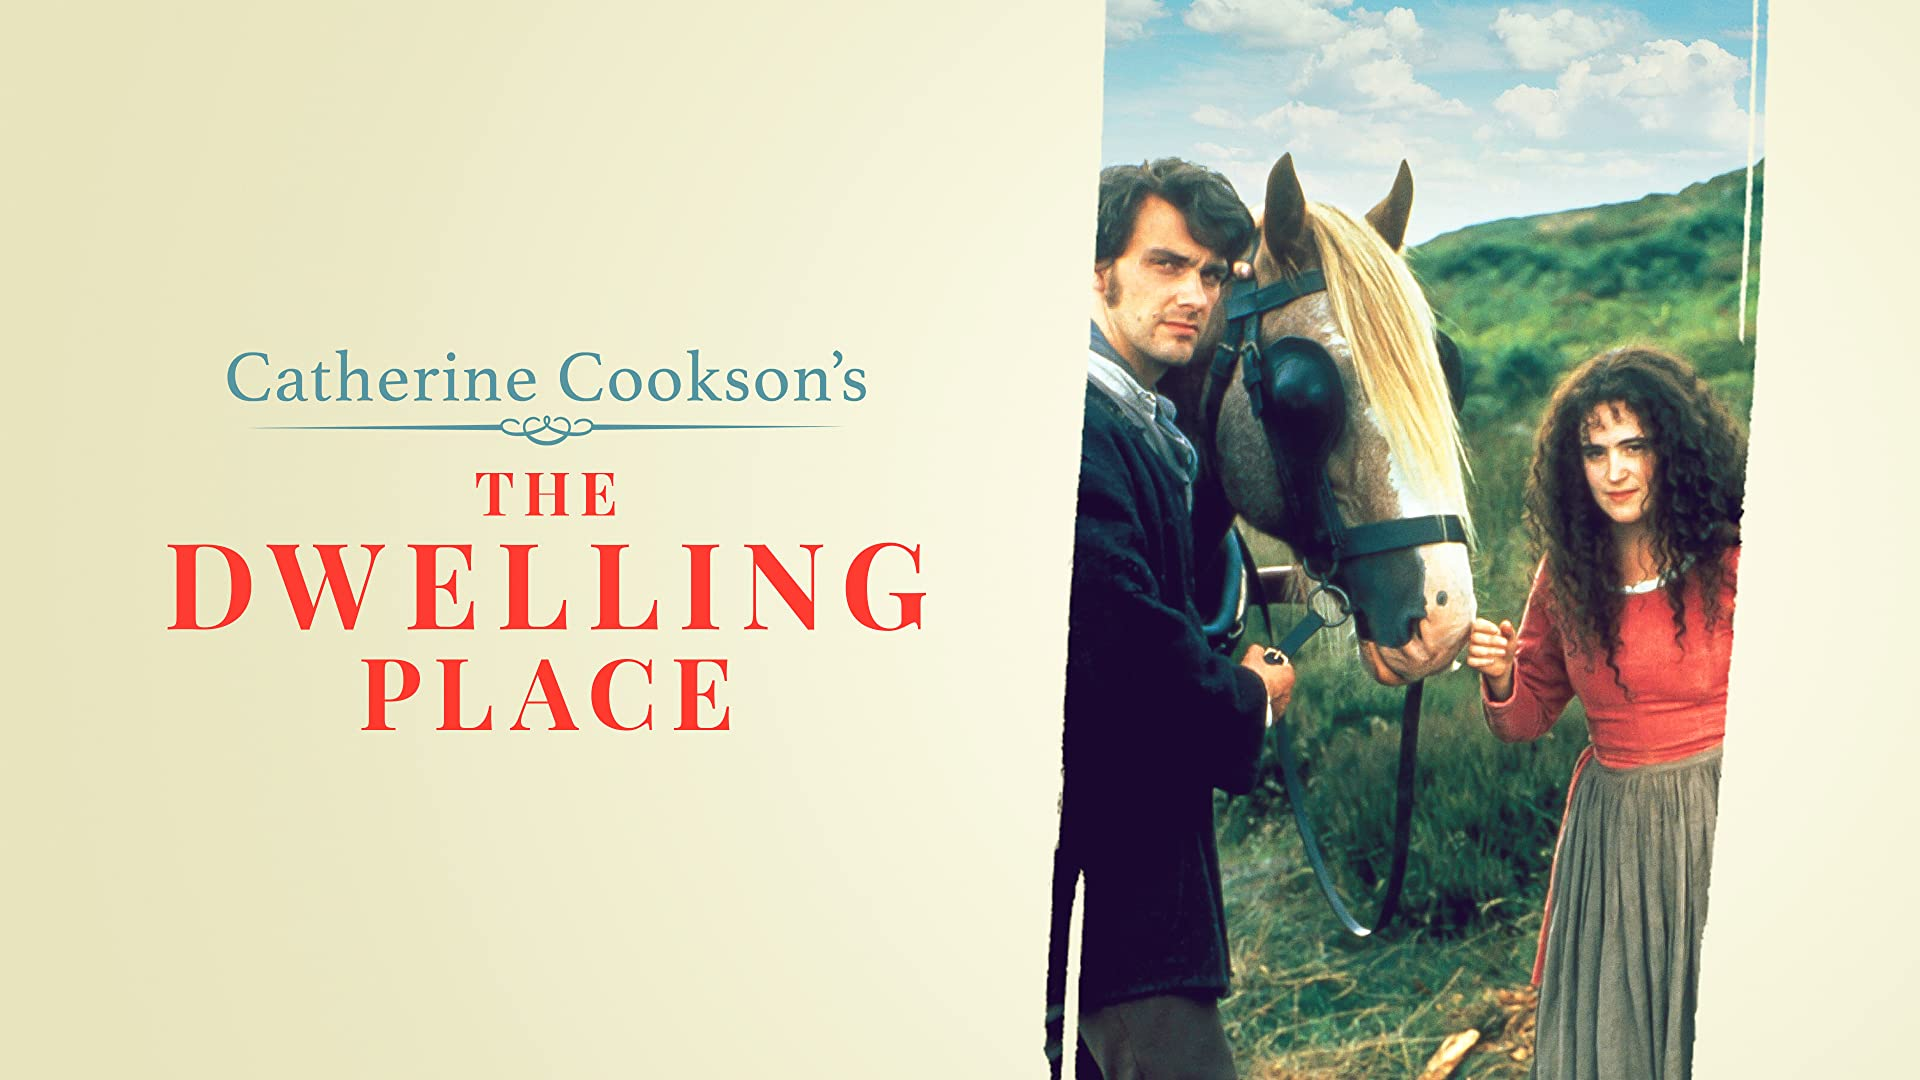 Catherine Cookson's The Dwelling Place